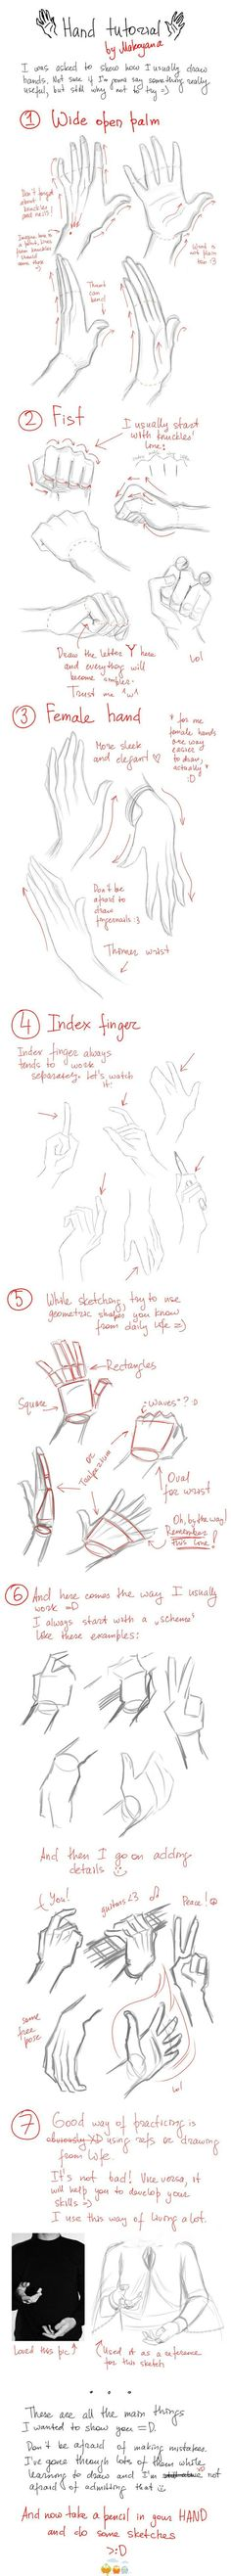 Inspiring 'HANDS' via Paula Parker Sketchy at Best bloglovin.com ~ Wendy Schultz ~ Drawing & Sketching.